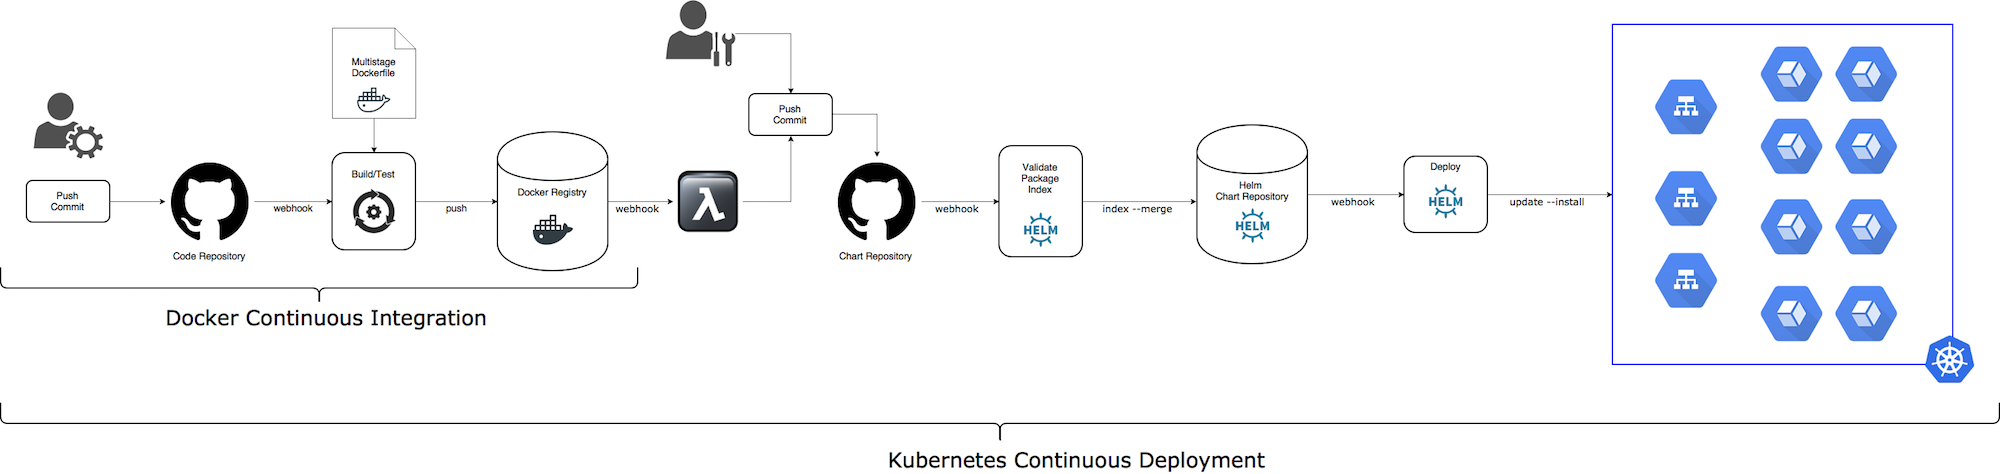 Continuous Delivery and Continuous Deployment for Kubernetes